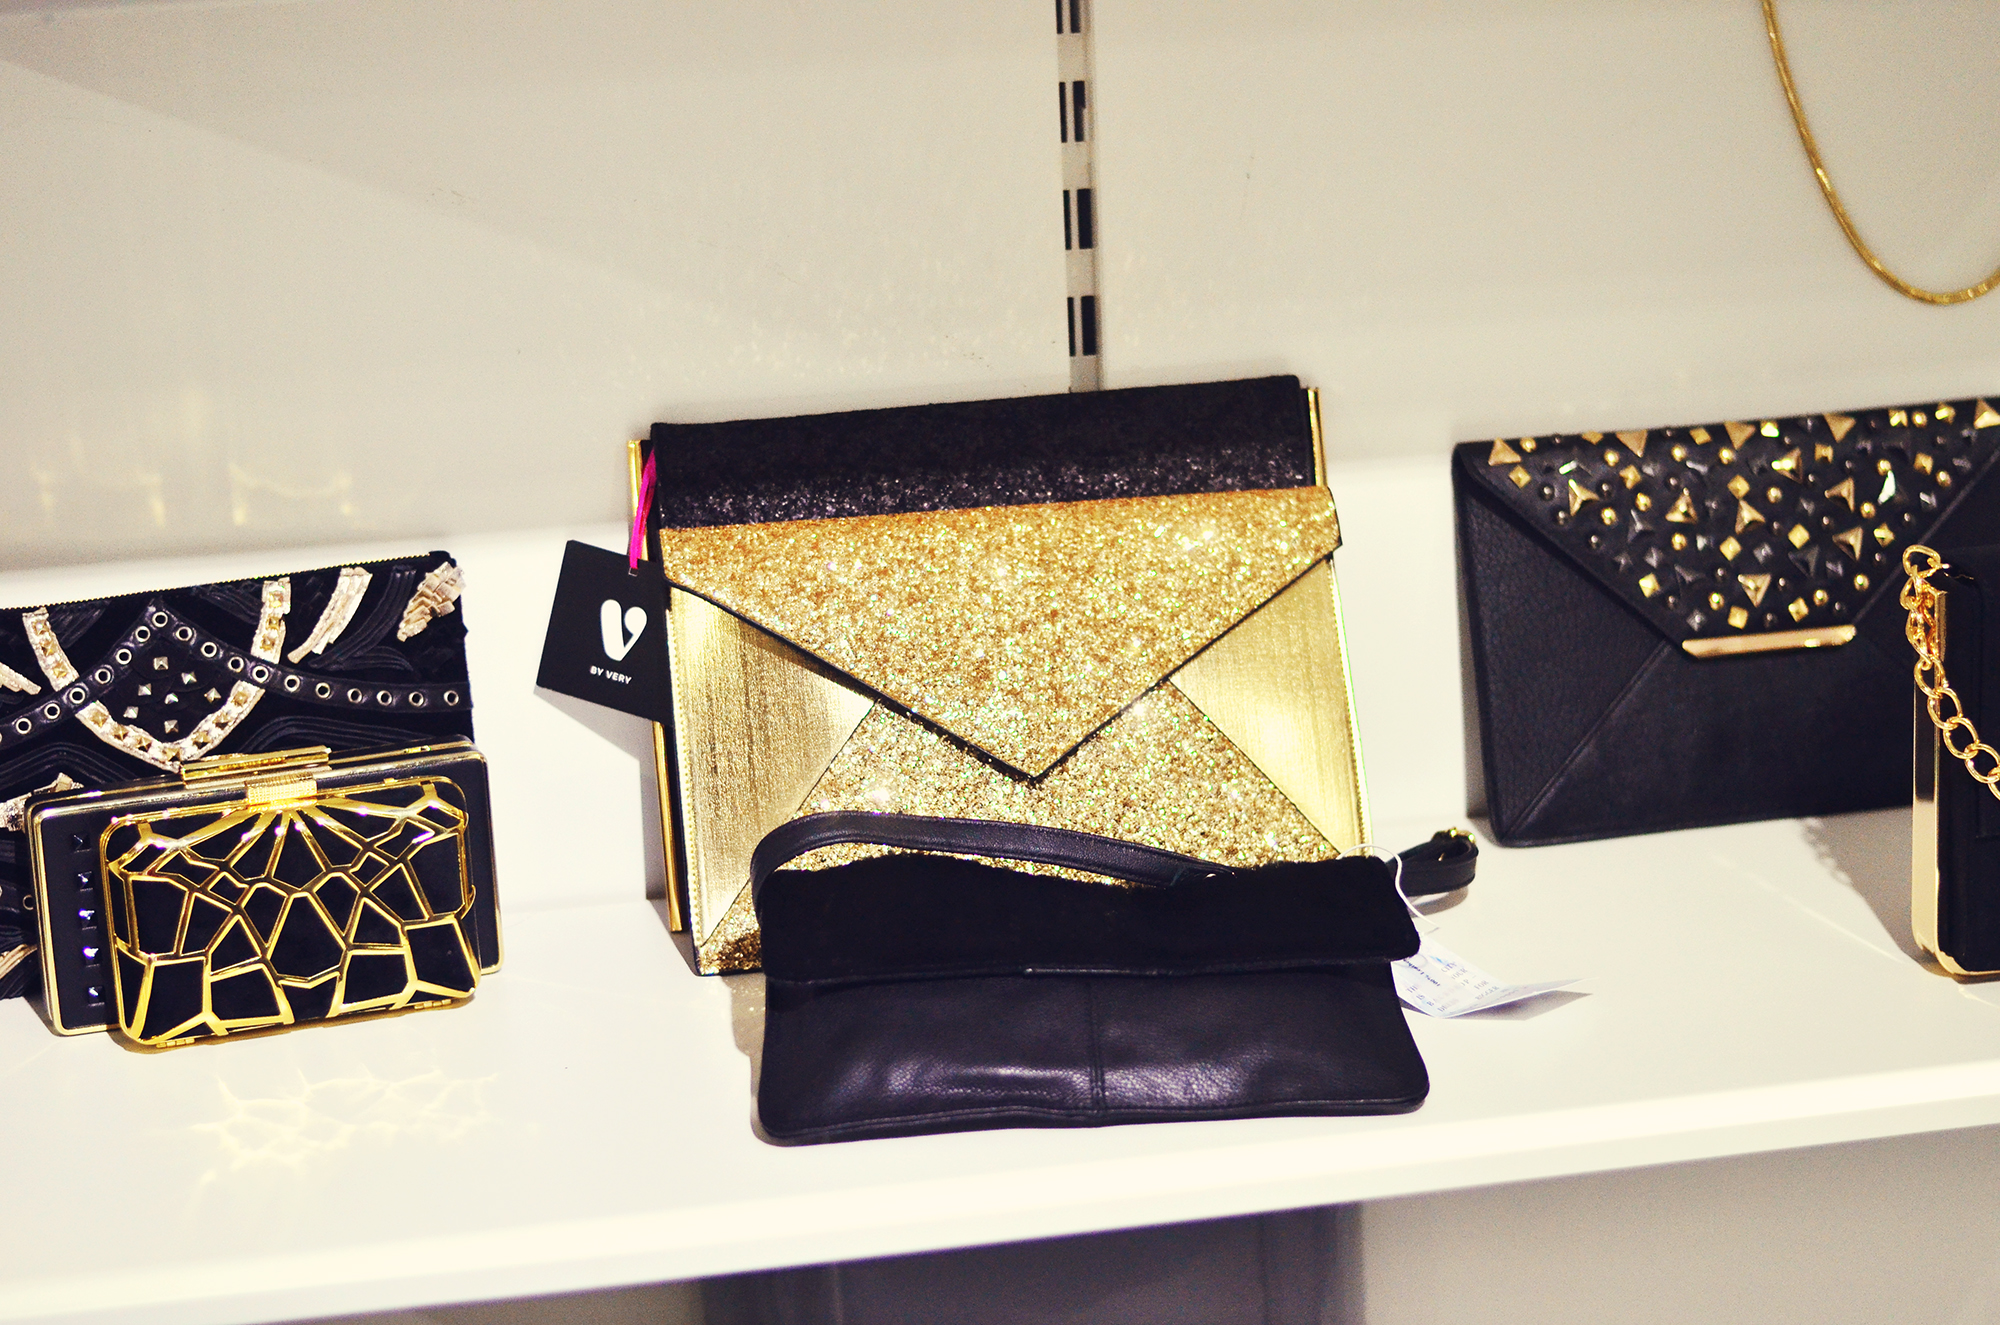 Clutch bags from Very.co.uk Partywear range